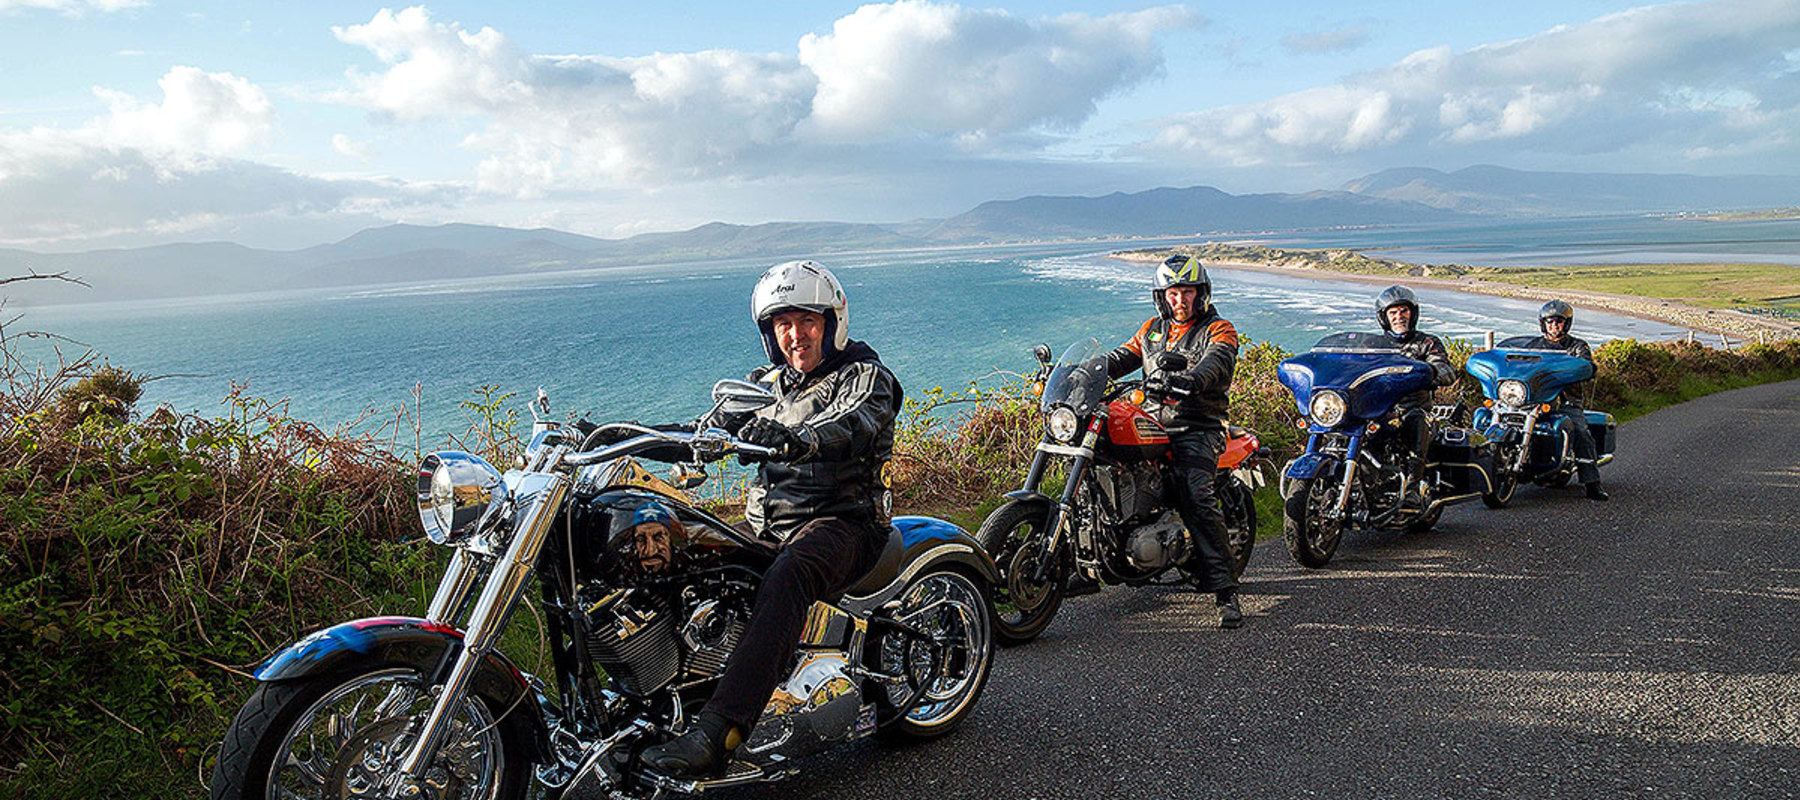 The Harley Owners Group Blog | UK & IRELAND EXCLUSIVE: